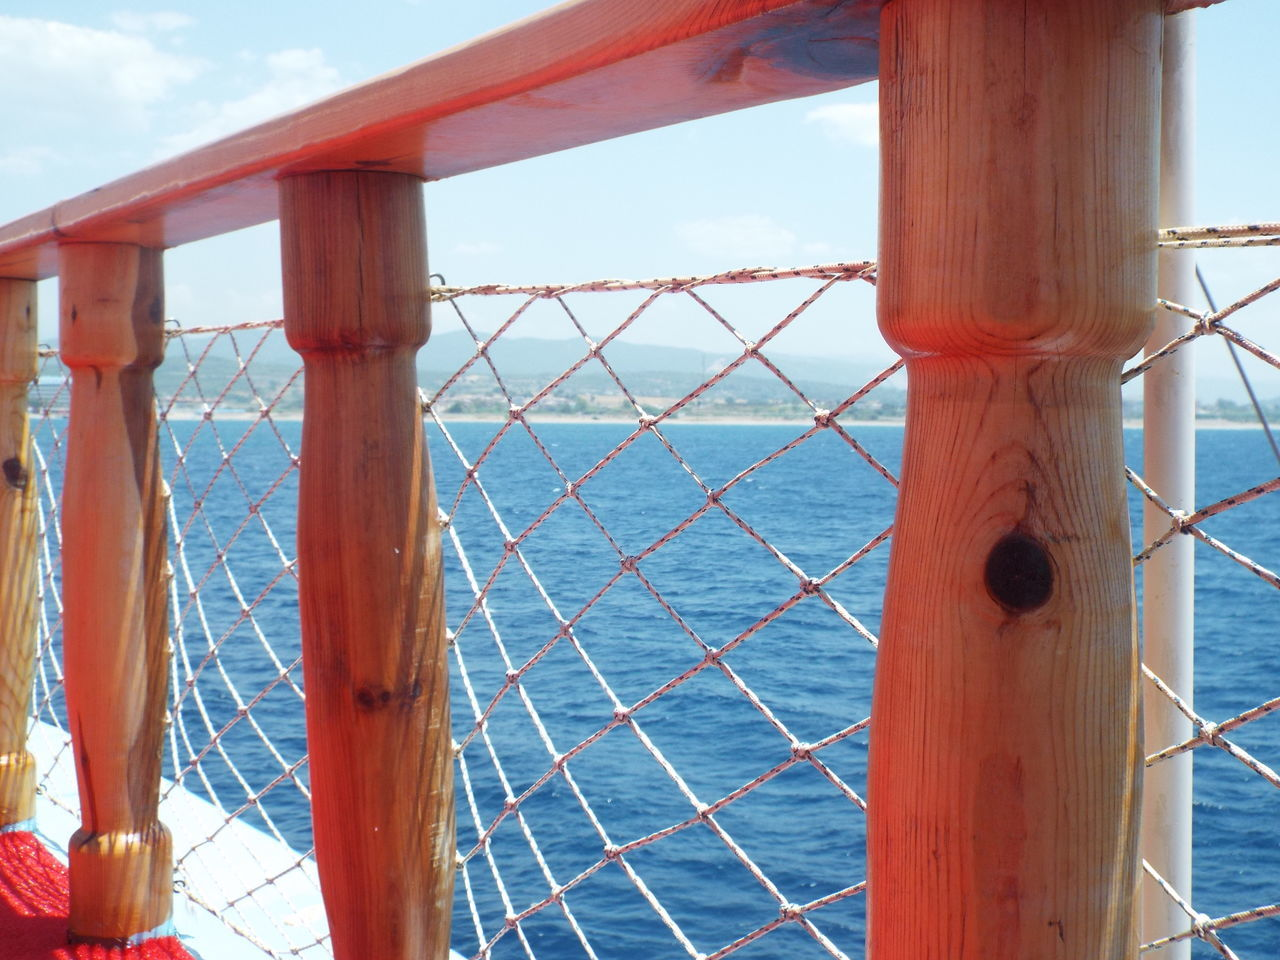 On A Boat Boat Trip Mediterranean Sea Sea Blue Water Tourist Attraction  Day Trip Tourism Travel Destinations Travel Photography Boat Mountains Coastline Rope Railing Wooden Railing Safety Blue Sky Blue Wave On The Way